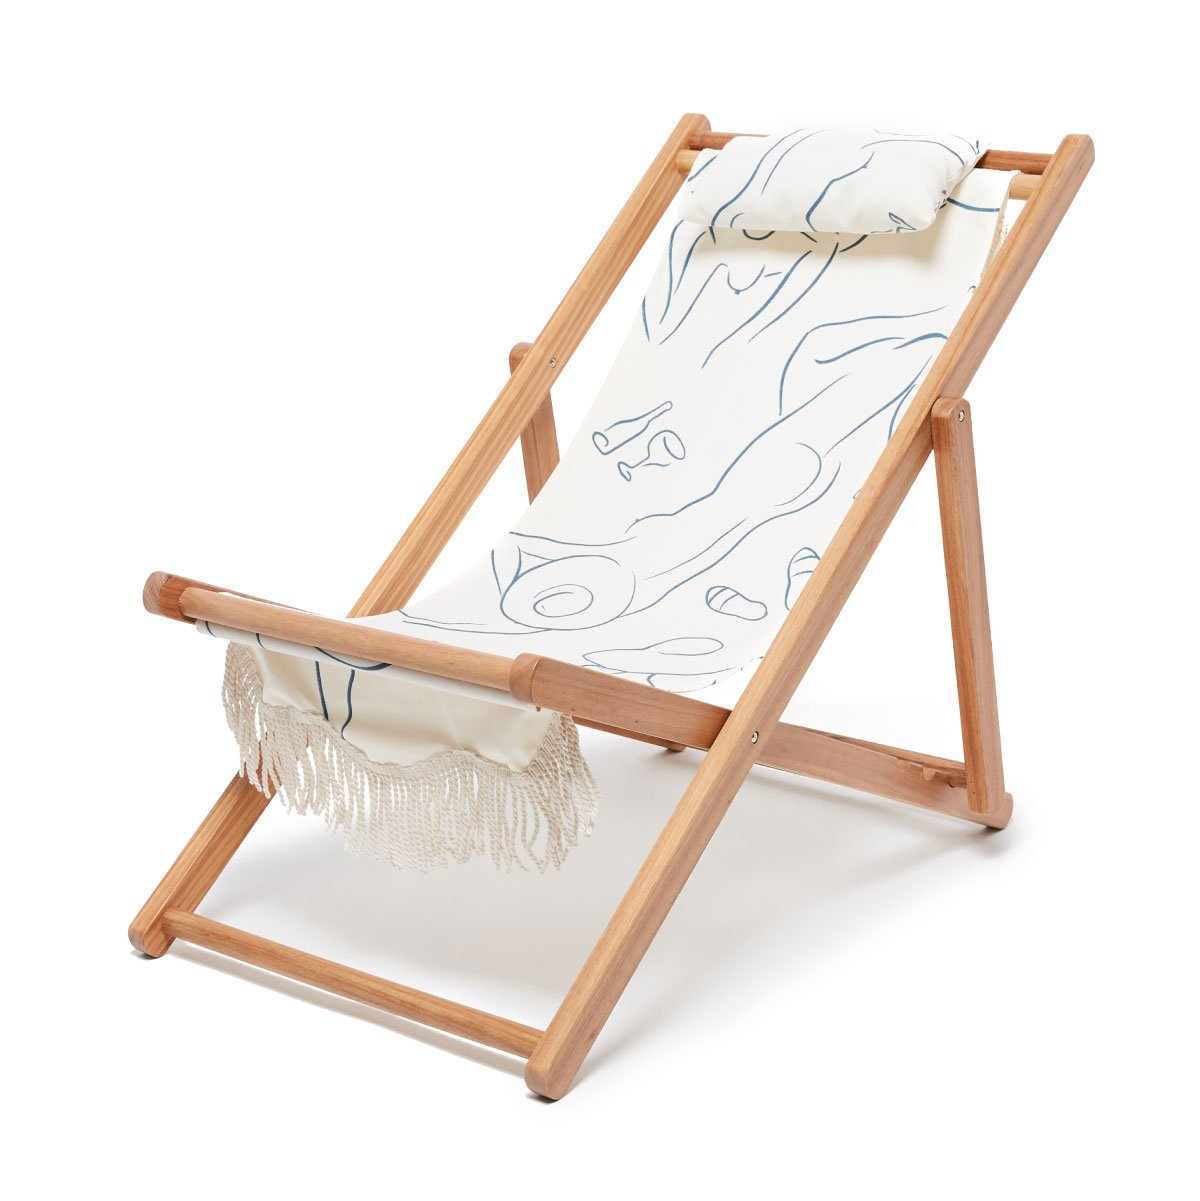 Summer Party Hostess Gifts: Business and Pleasure Co. Sling Chair